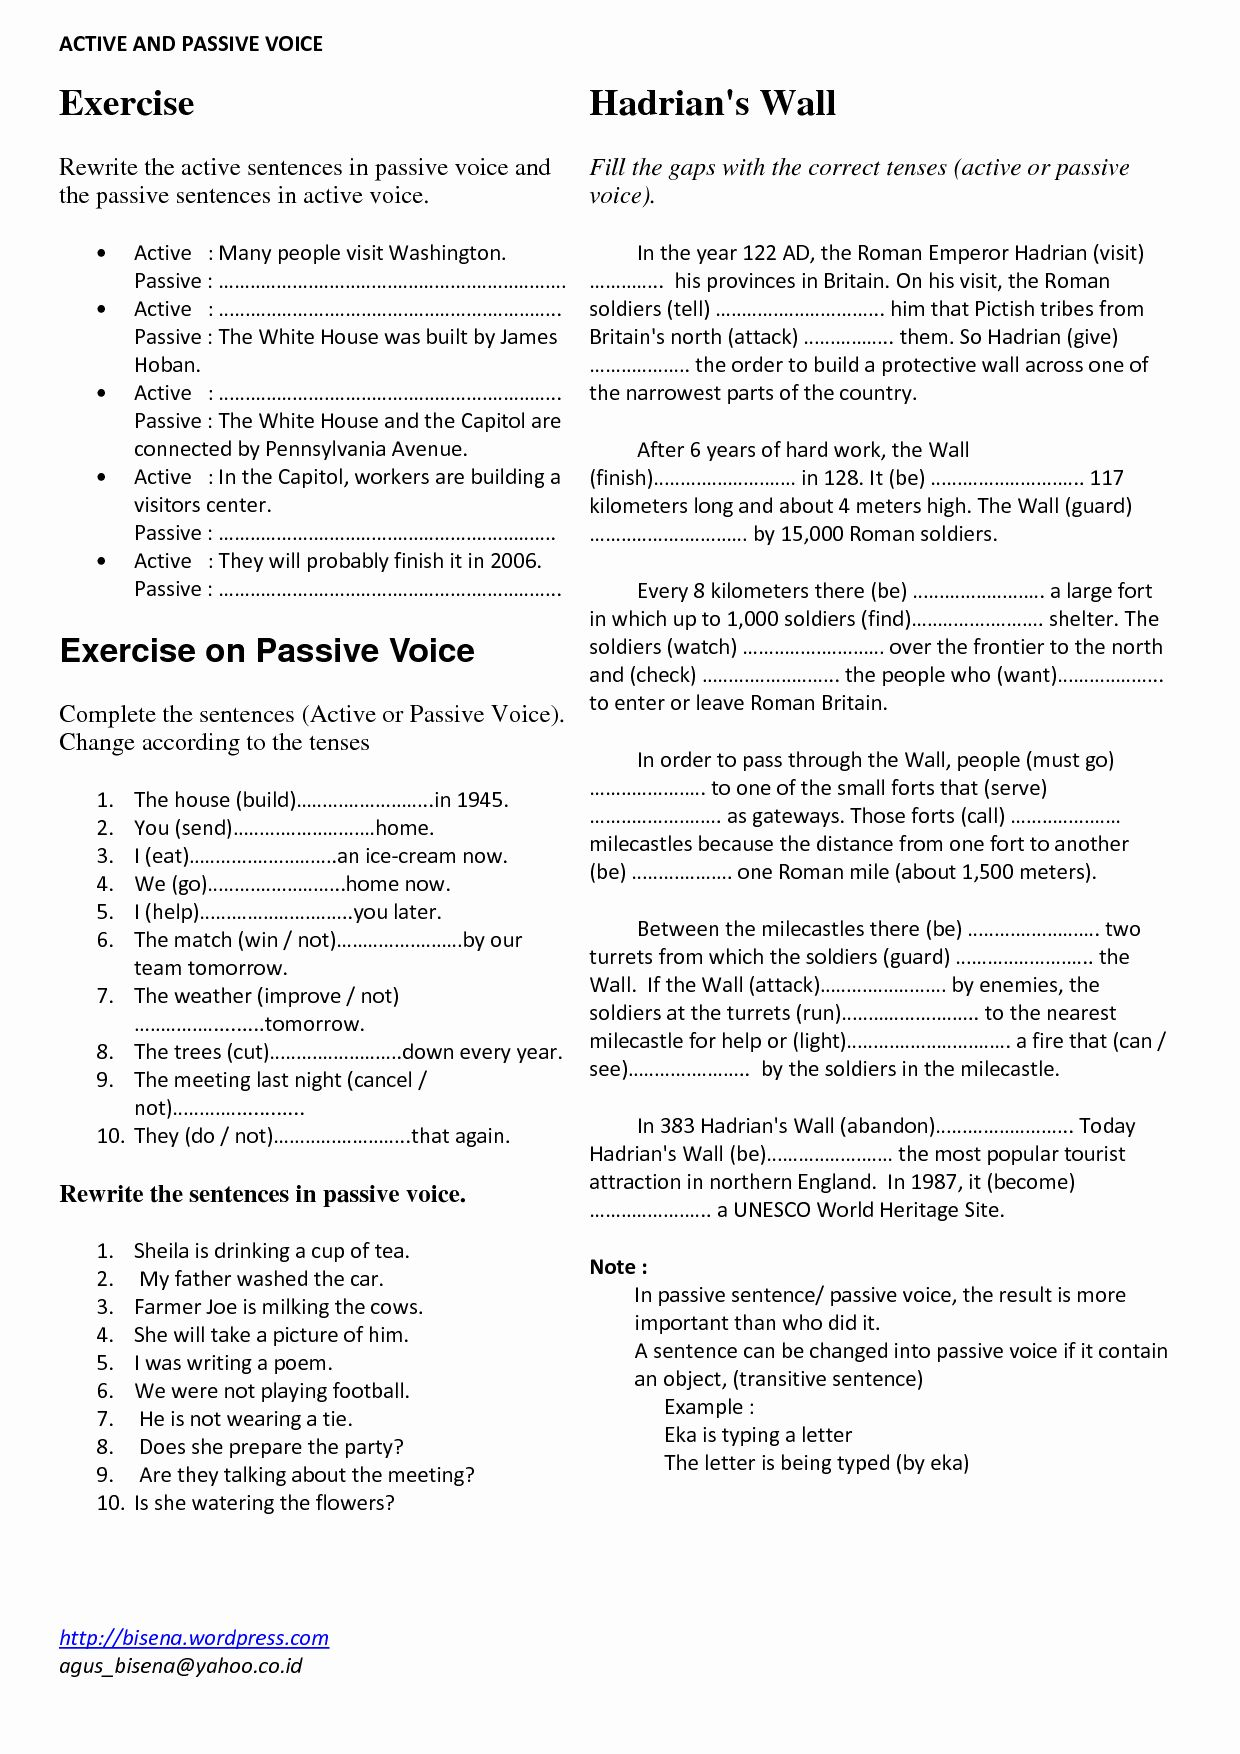 Active Passive Voice Worksheet New Passive Voice